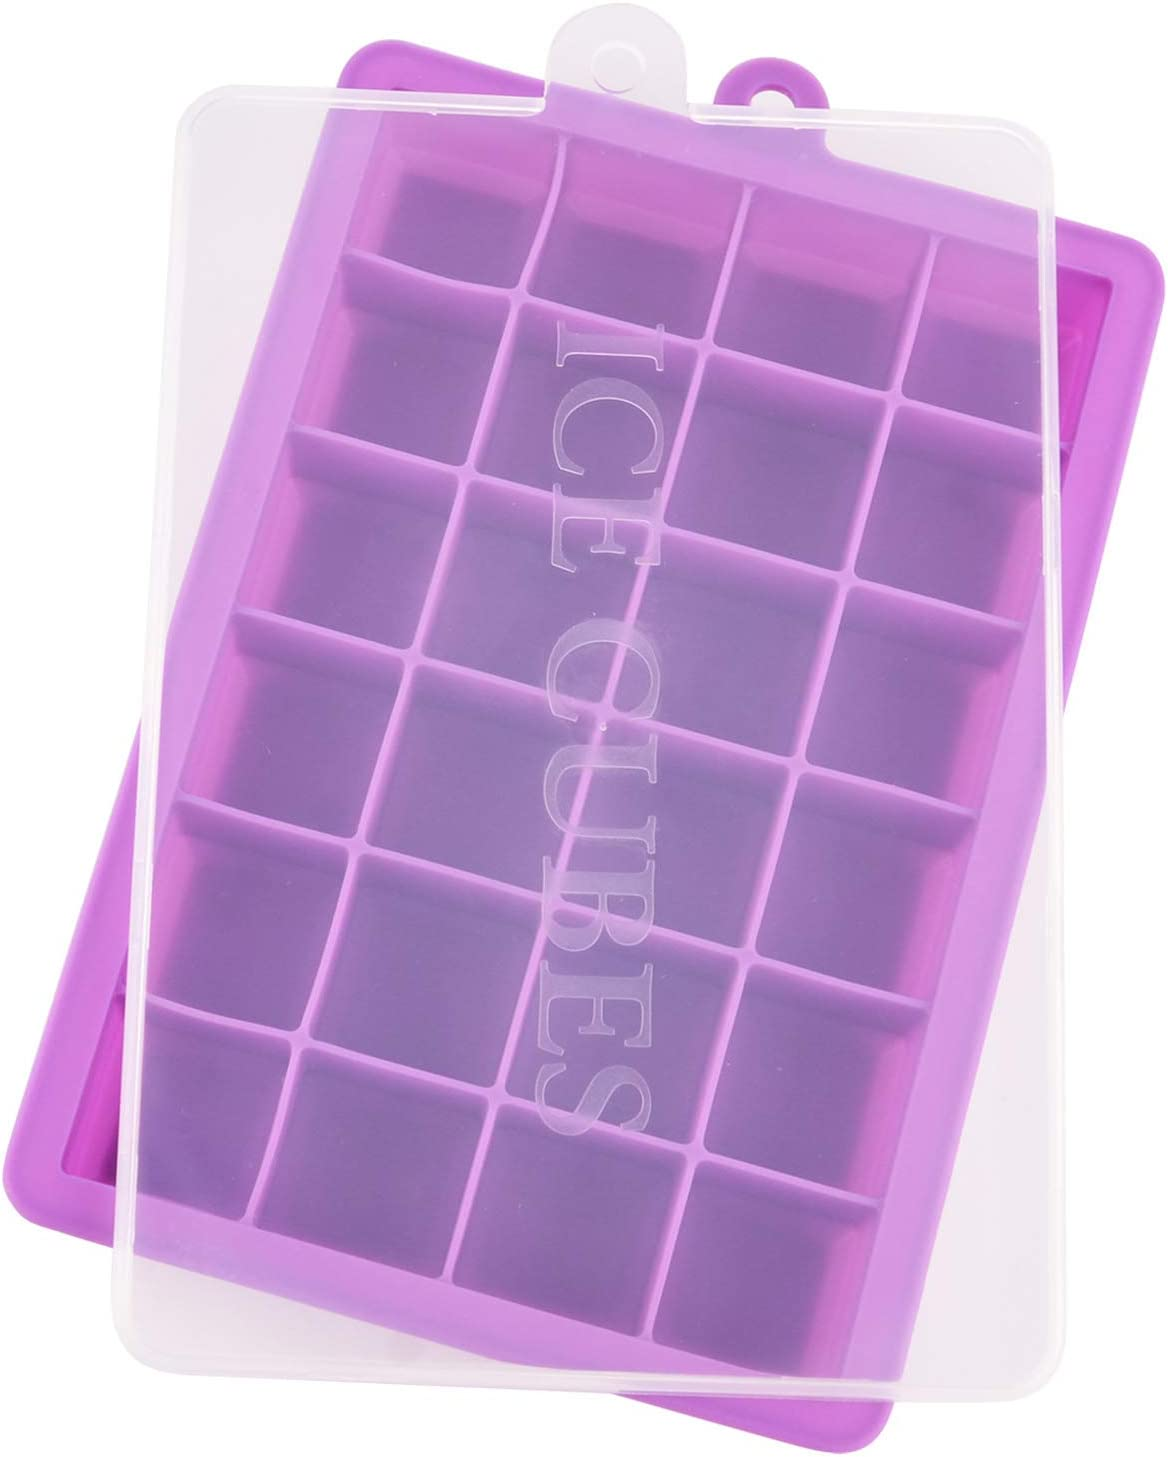 Ice Cube Tray, Silicone Ice Tray Molds Easy Release Ice Jelly Pudding Maker Mold, 24 Cavity (Purple)